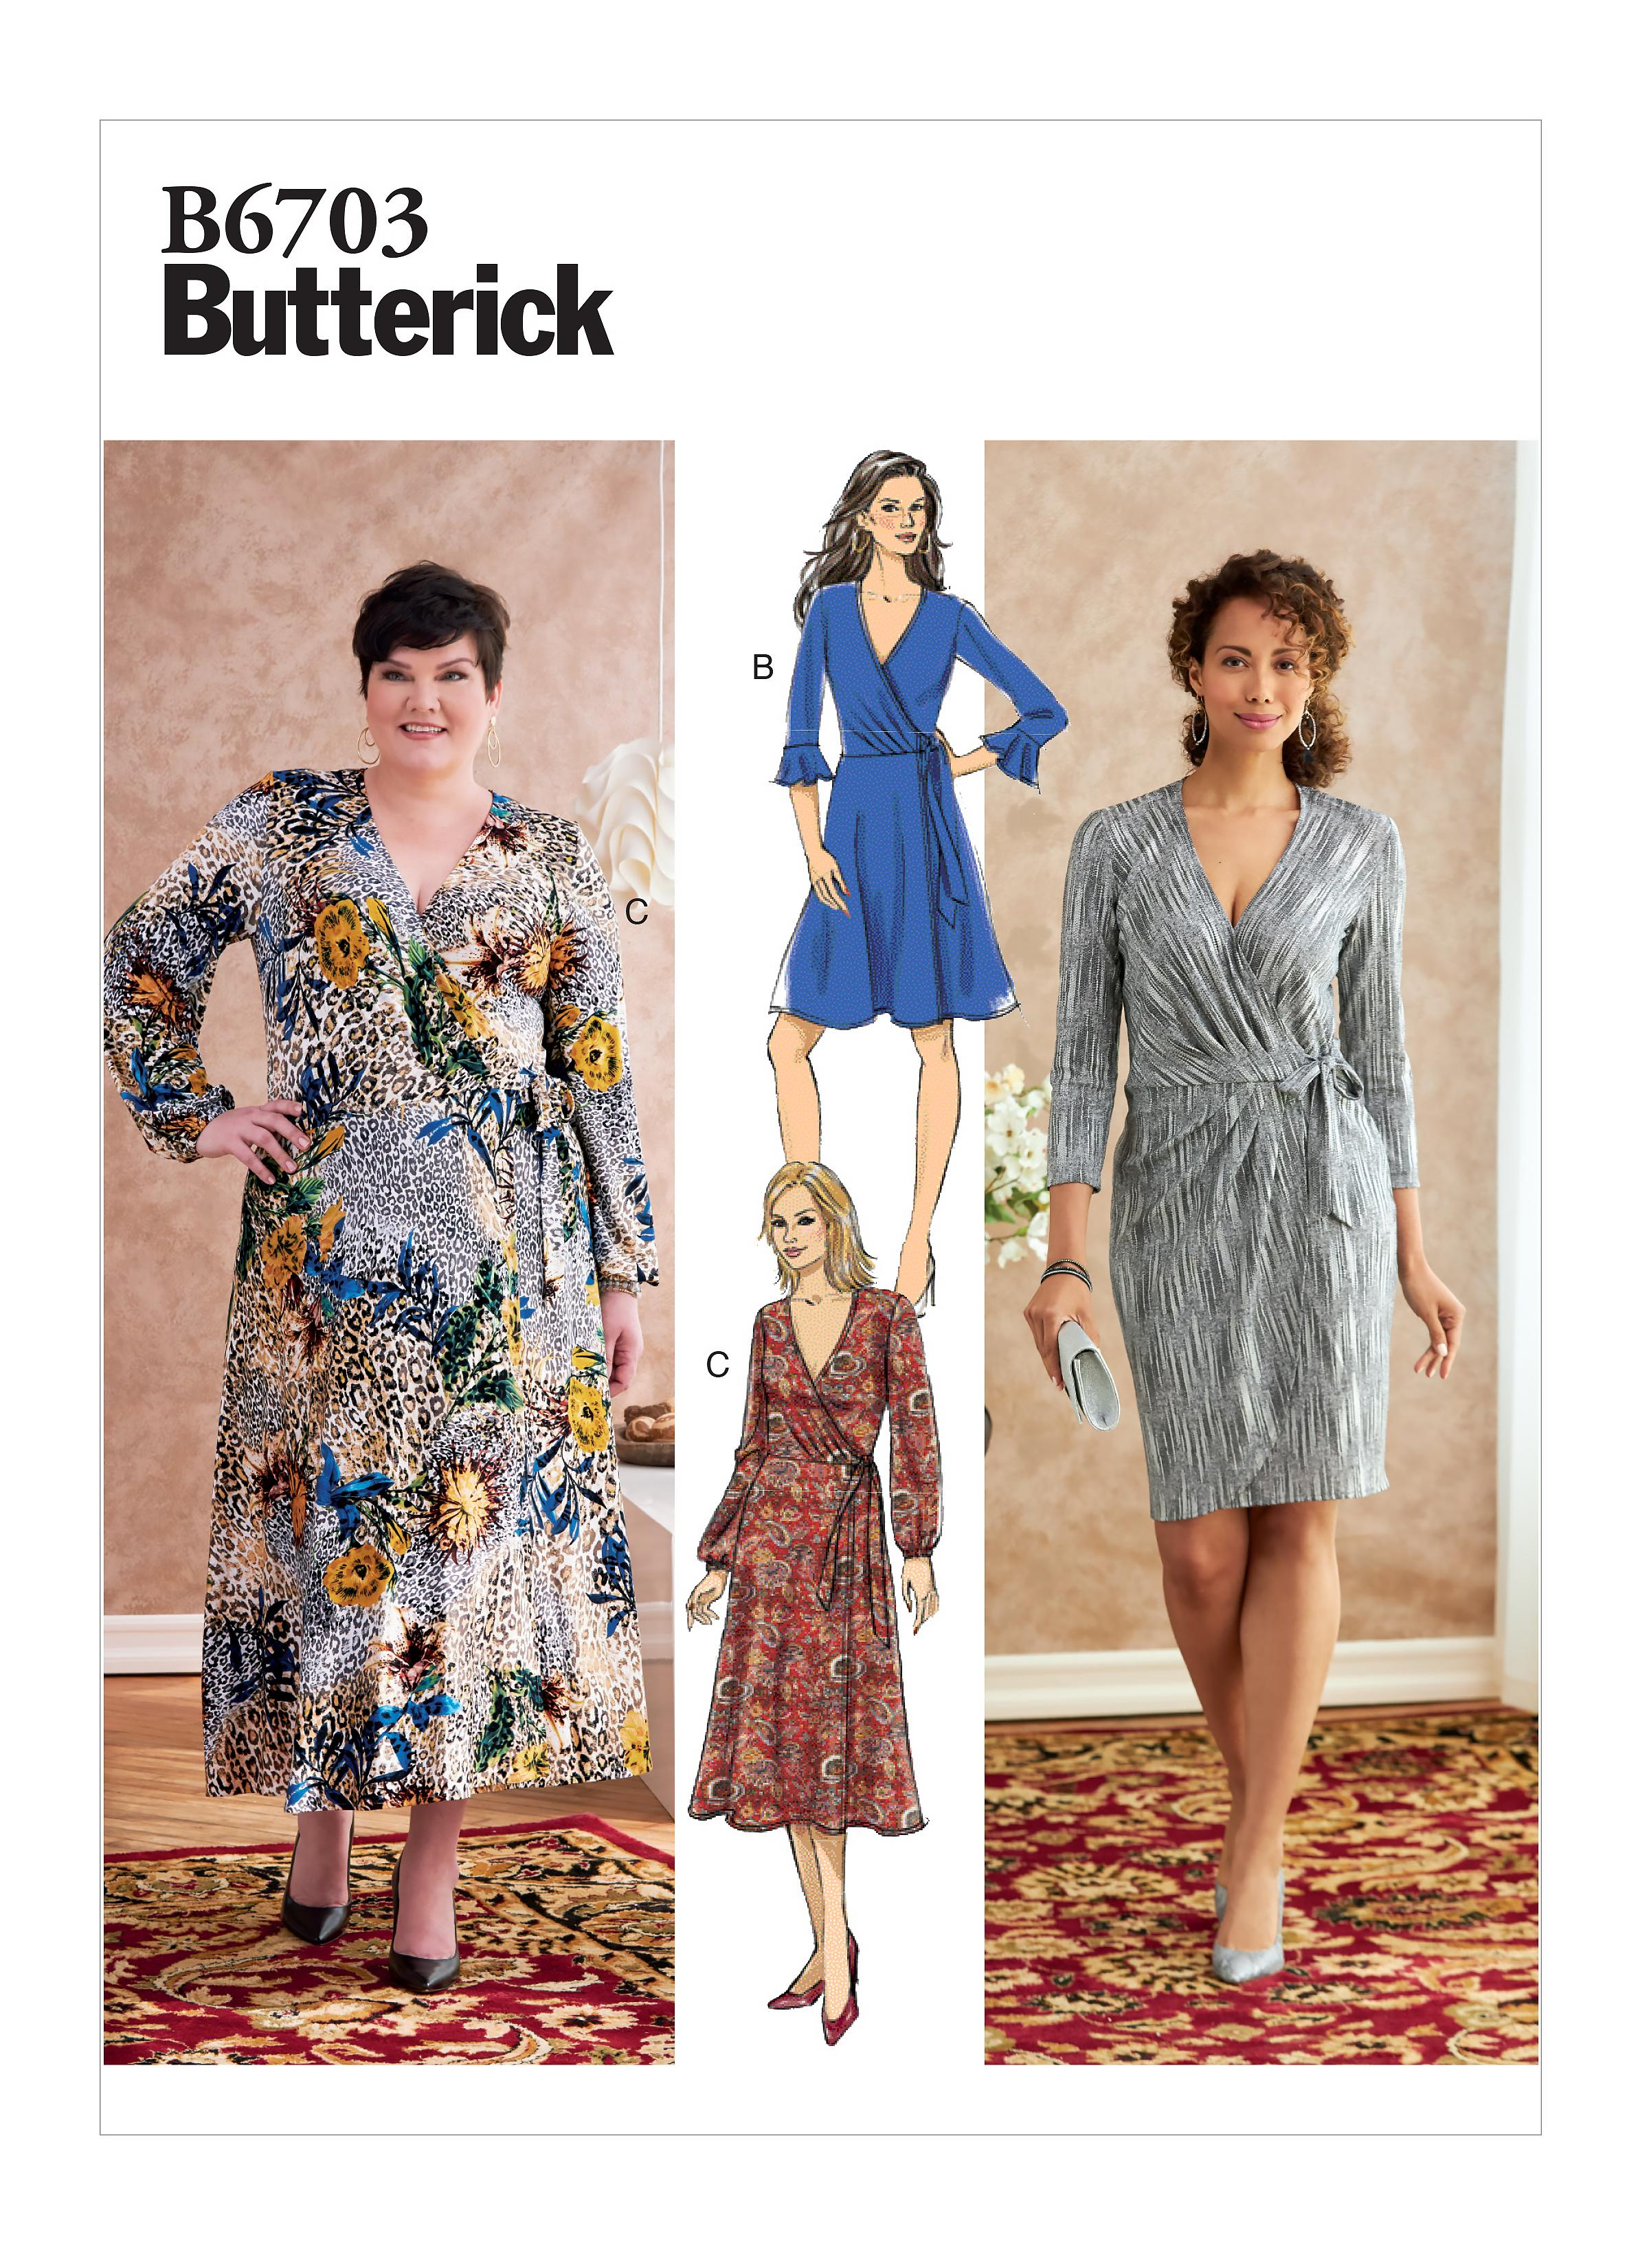 Butterick B6703 Misses'/Women's Dress